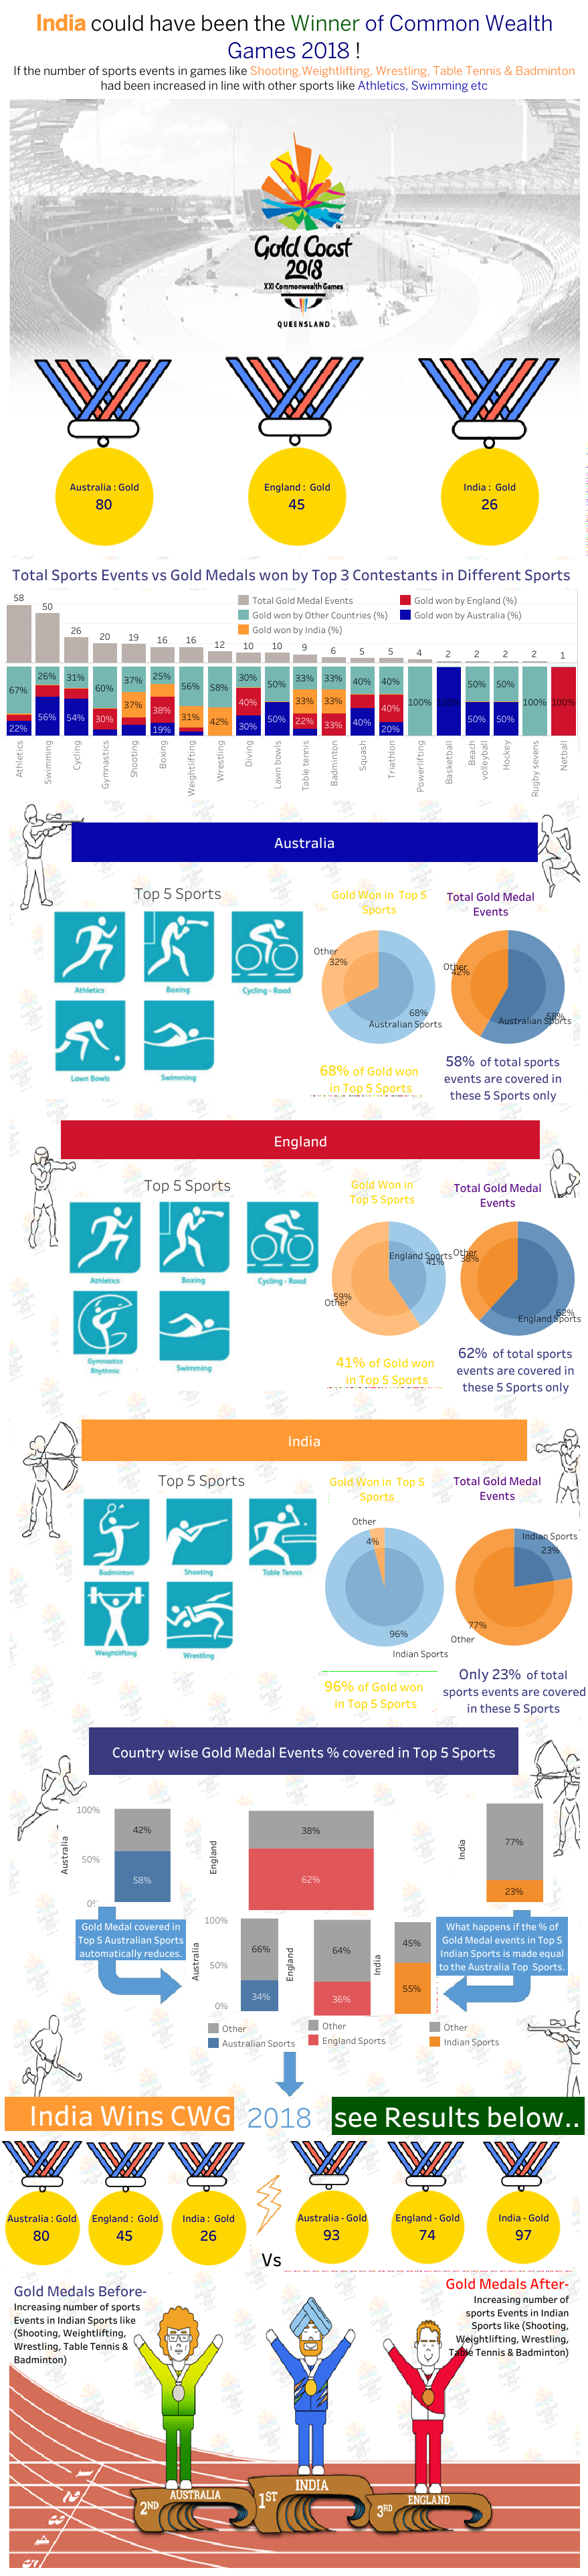 tableau-dashboard-srijan-commonwealth-games-2018-analytics